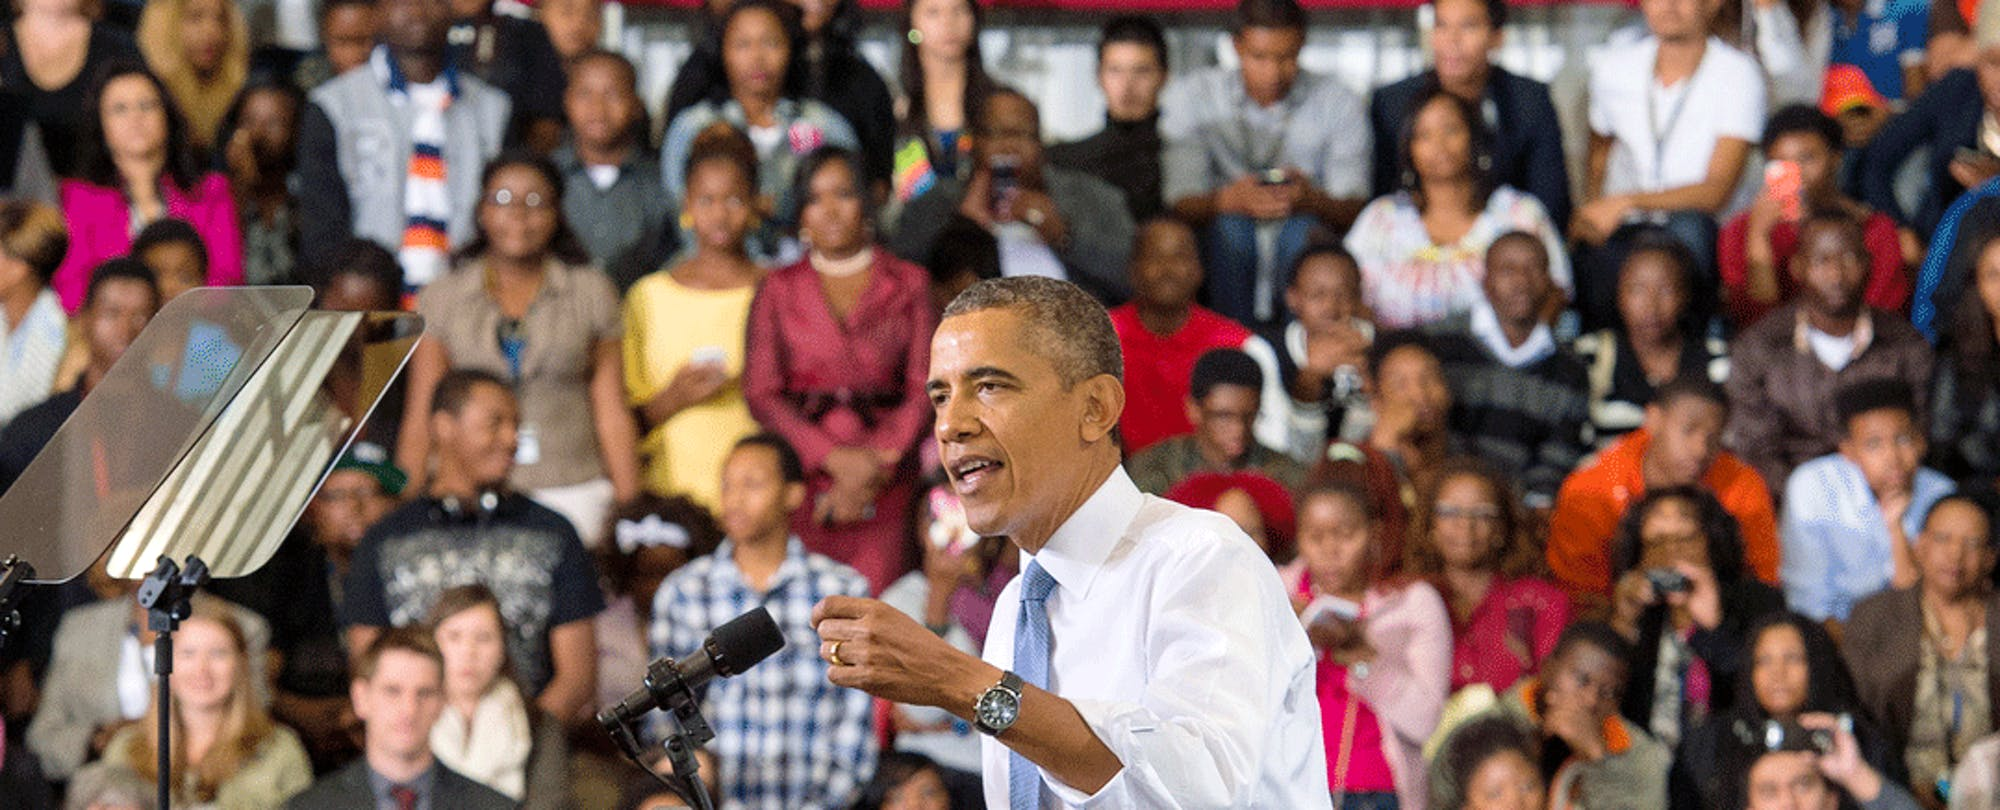 Obama Spells Out Plan for Free Community College for All